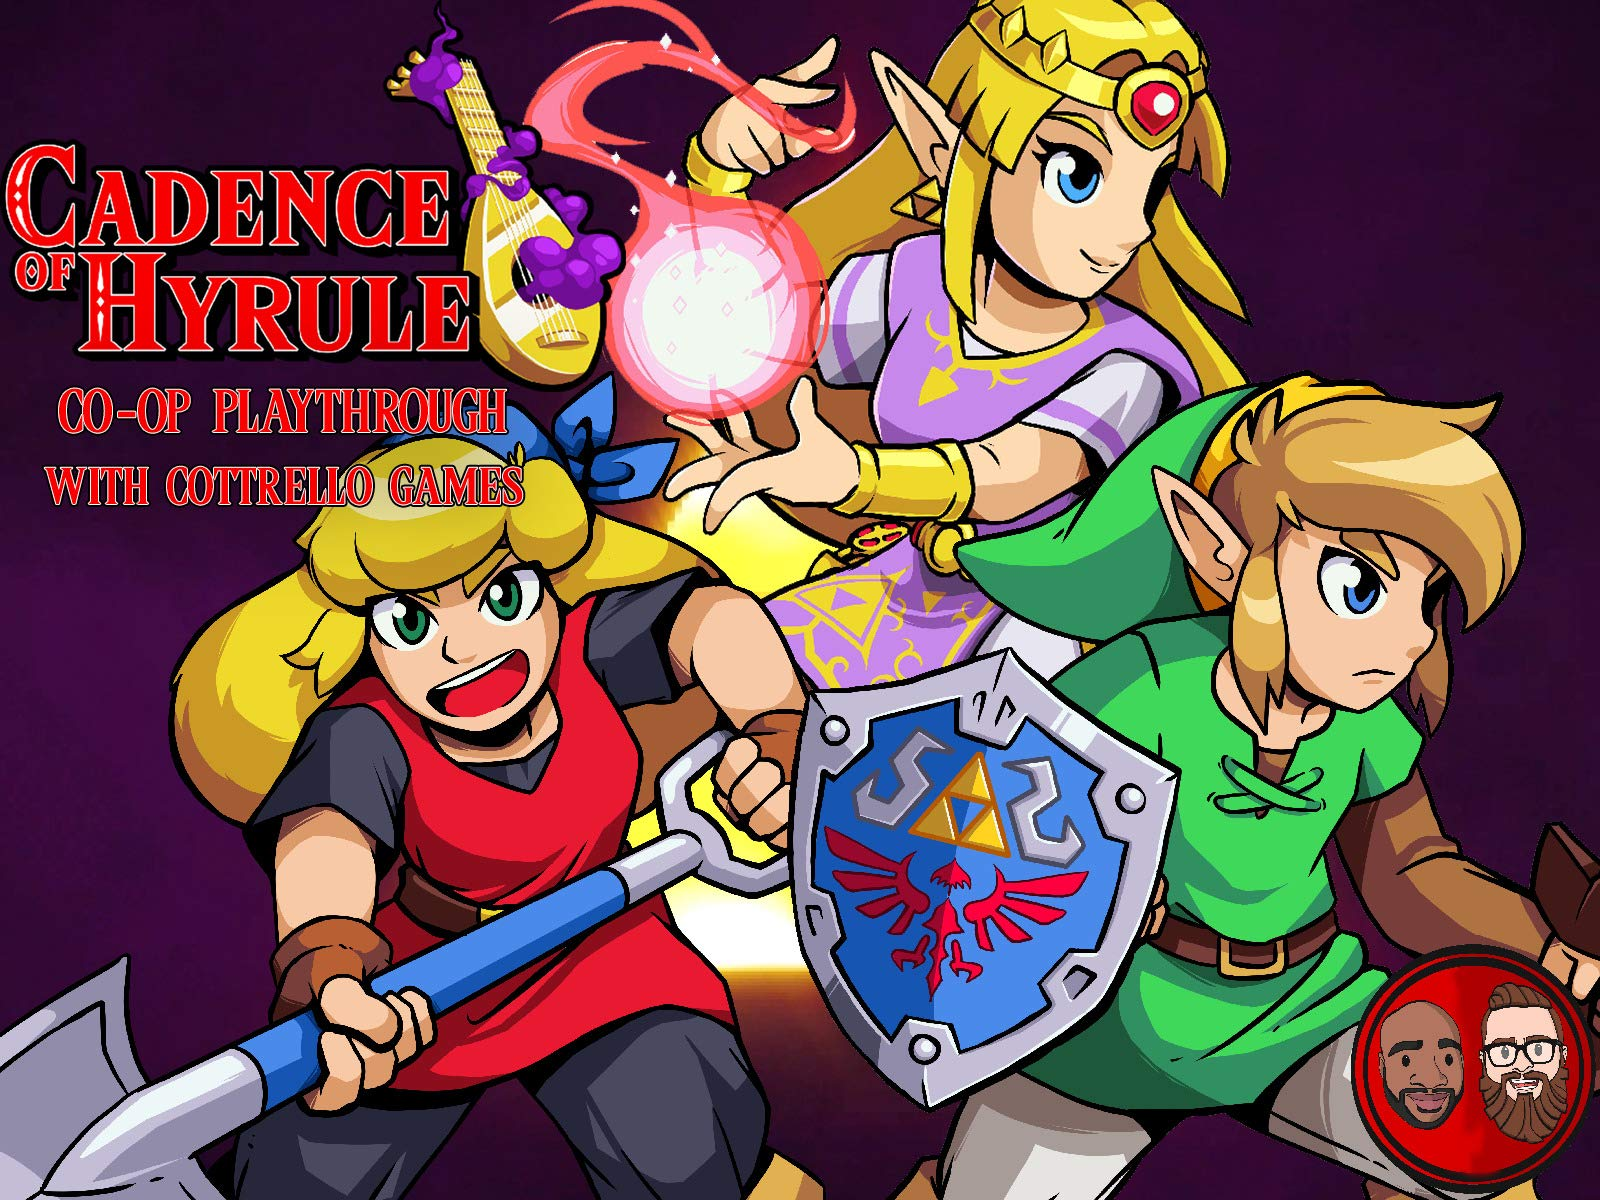 Cadence of Hyrule Co-Op Playthrough with Cottrello Games - Season 1